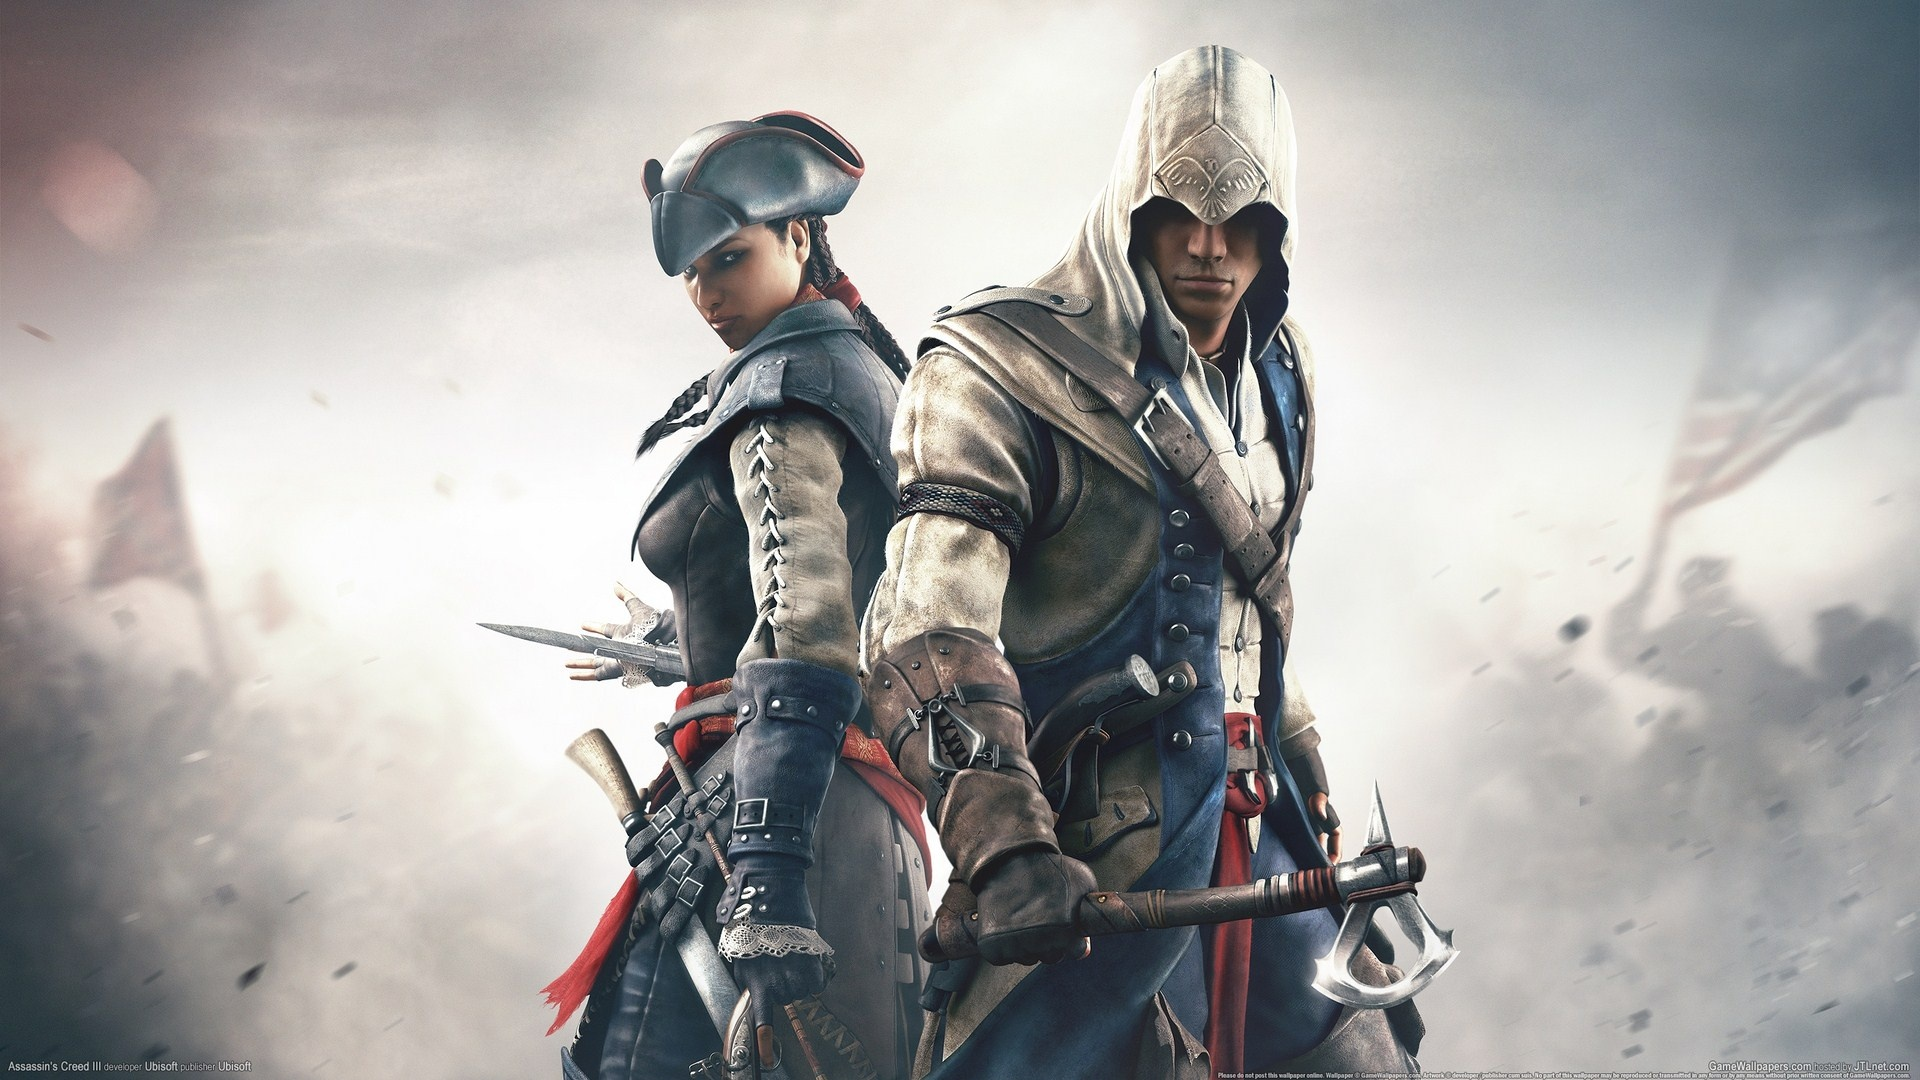 Assassin s Creed 3 PC game 1920x1080jpg 1920x1080